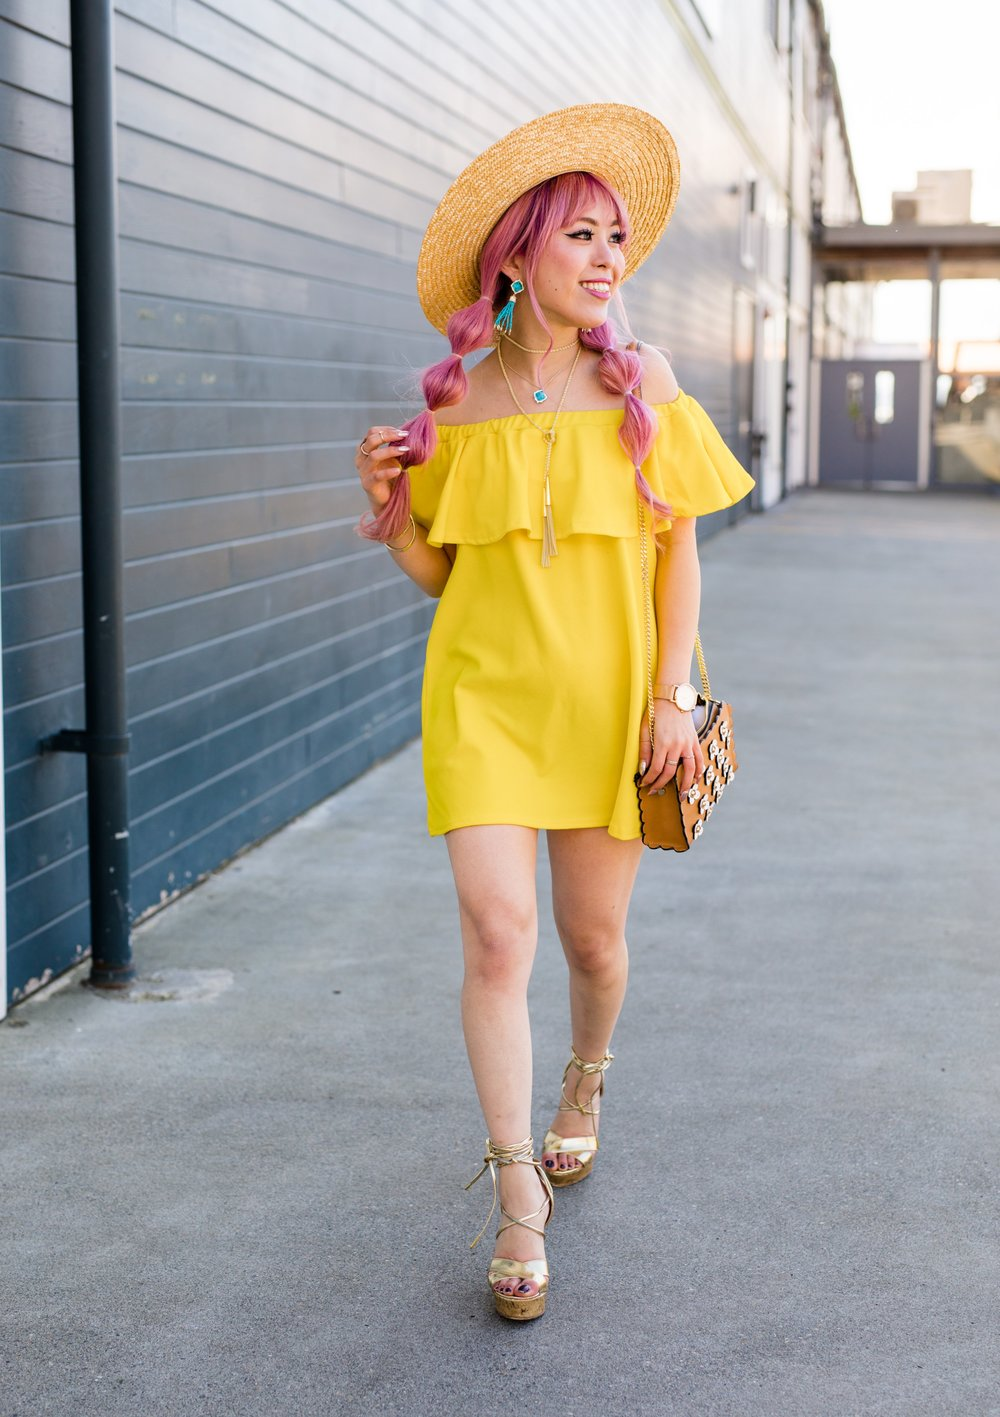 Lack Of Color Wide brim Straw Hat_Boohoo Yellow Off the shoulder dress via ASOS_ZARA CROSSBODY BAG WITH FLOWERS_Shoe Dazzle Lace up Wedge Sandals_Kendra Scott MISHA STATEMENT EARRINGS IN BRONZE VEINED TURQUOISE_KACEY LONG PENDANT NECKLACE IN BRONZE VEINED TURQUOISE_Phara Necklace In Gold_Stella Cuff Bracelet In Gold_Pink Hair_bubble pigtails hairstyle_Aikas Love Closet_Seattle Fashion Style Blogger_Japanese 15